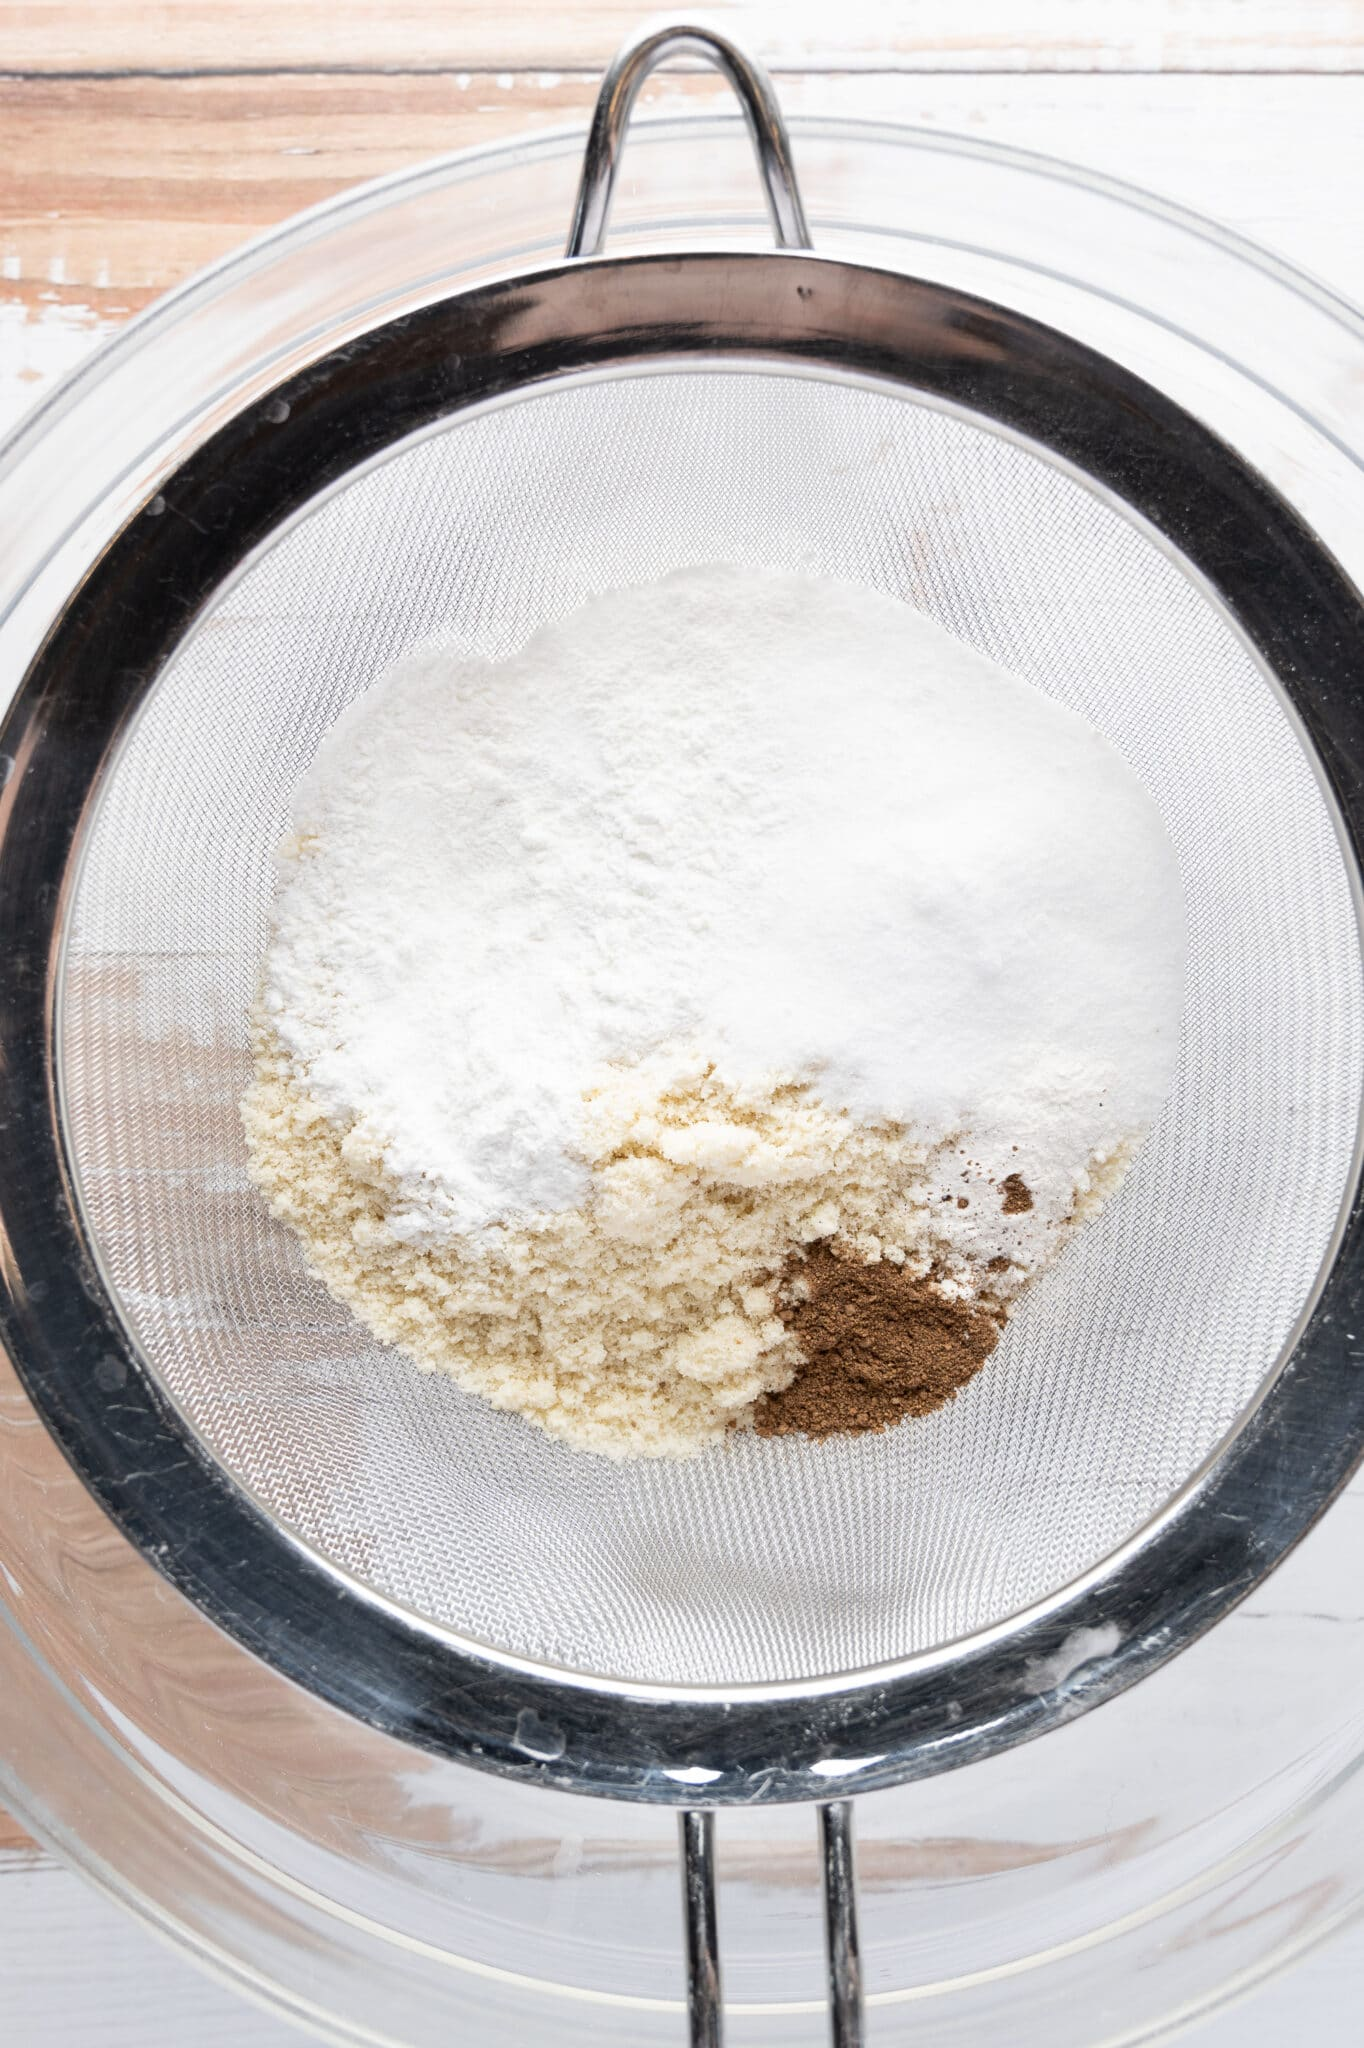 Low carb dry ingredients in a sifter sitting over a clear mixing bowl.